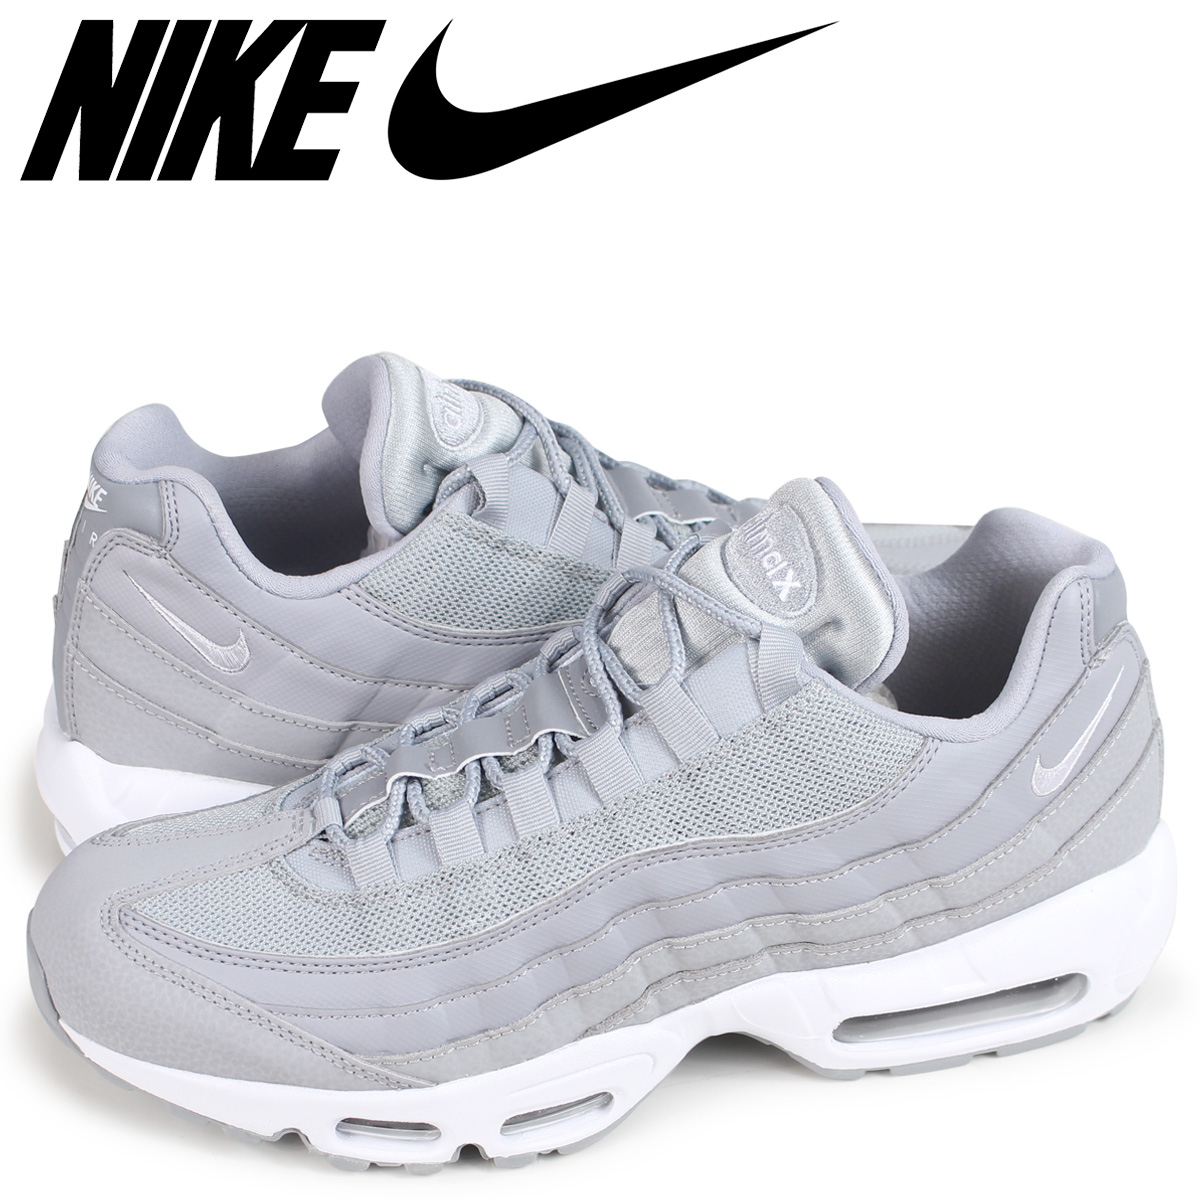 4cd7923c4c [brand NIKE getting high popularity from sneakers freak]. Classic AIR MAX 95  ...